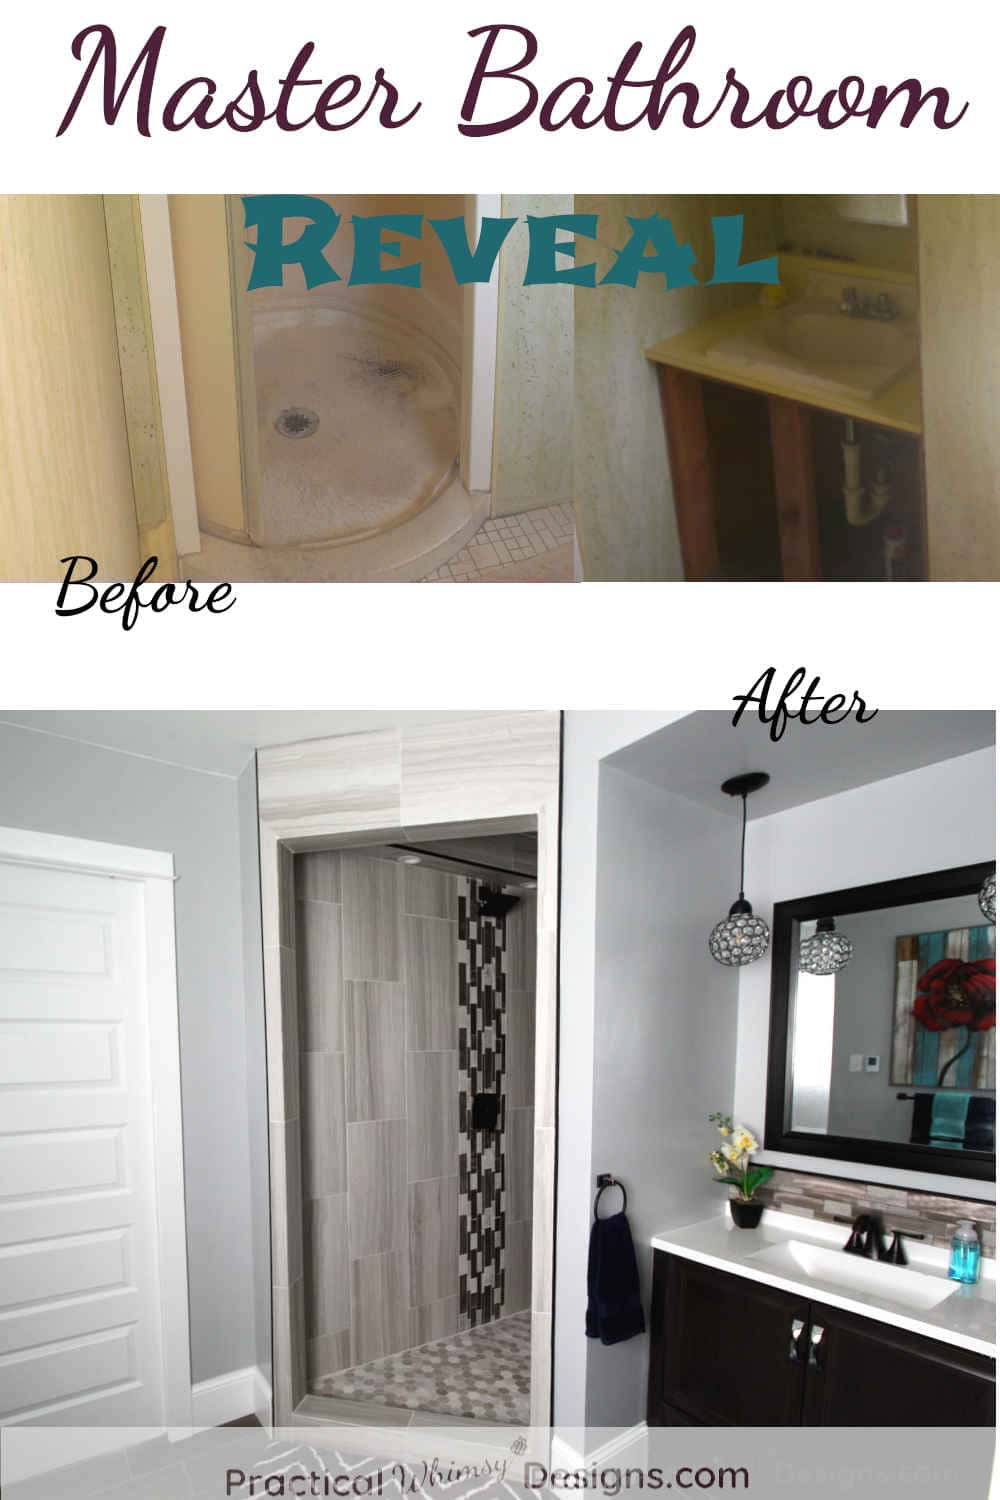 Master Bathroom Reveal before and after pictures